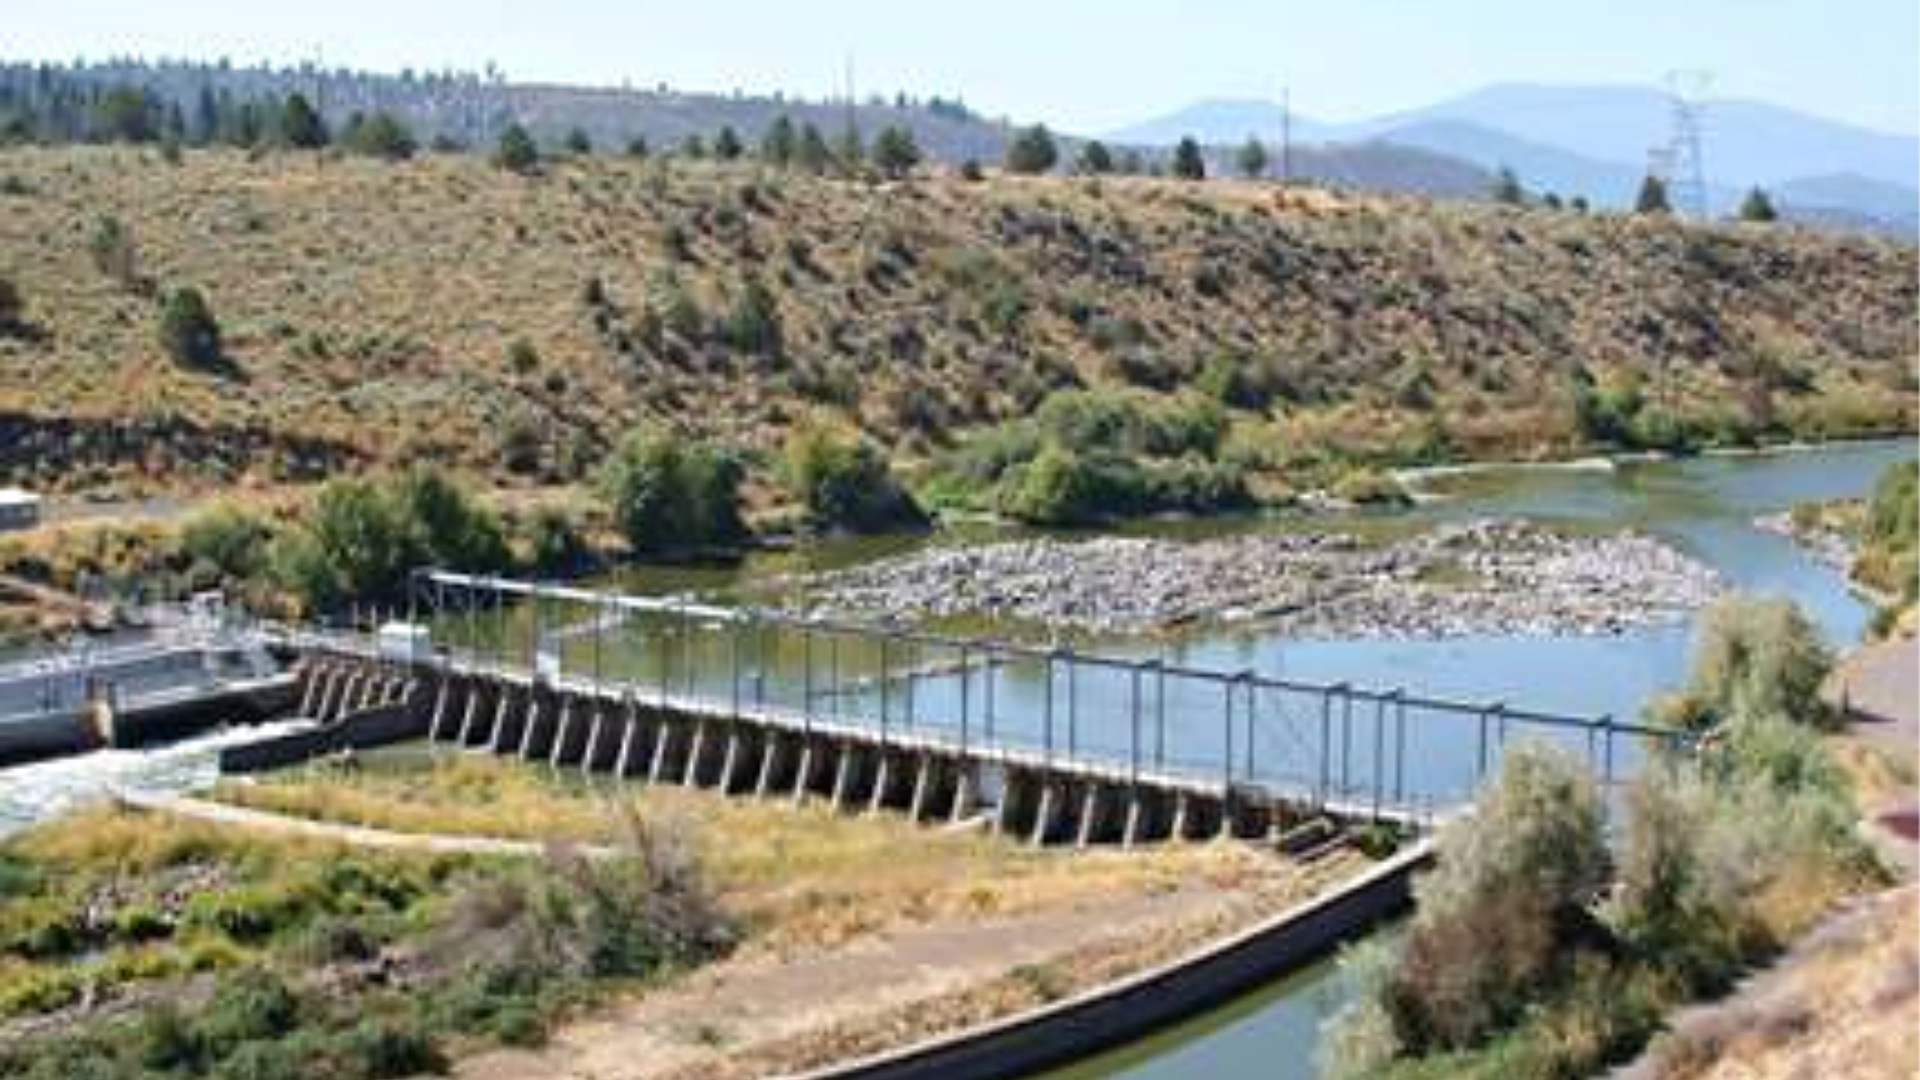 The Link River Dam, located some 250 river miles up the Klamath River from its mouth, is seen in an undated photo provided by U.S. Fish and Wildlife.